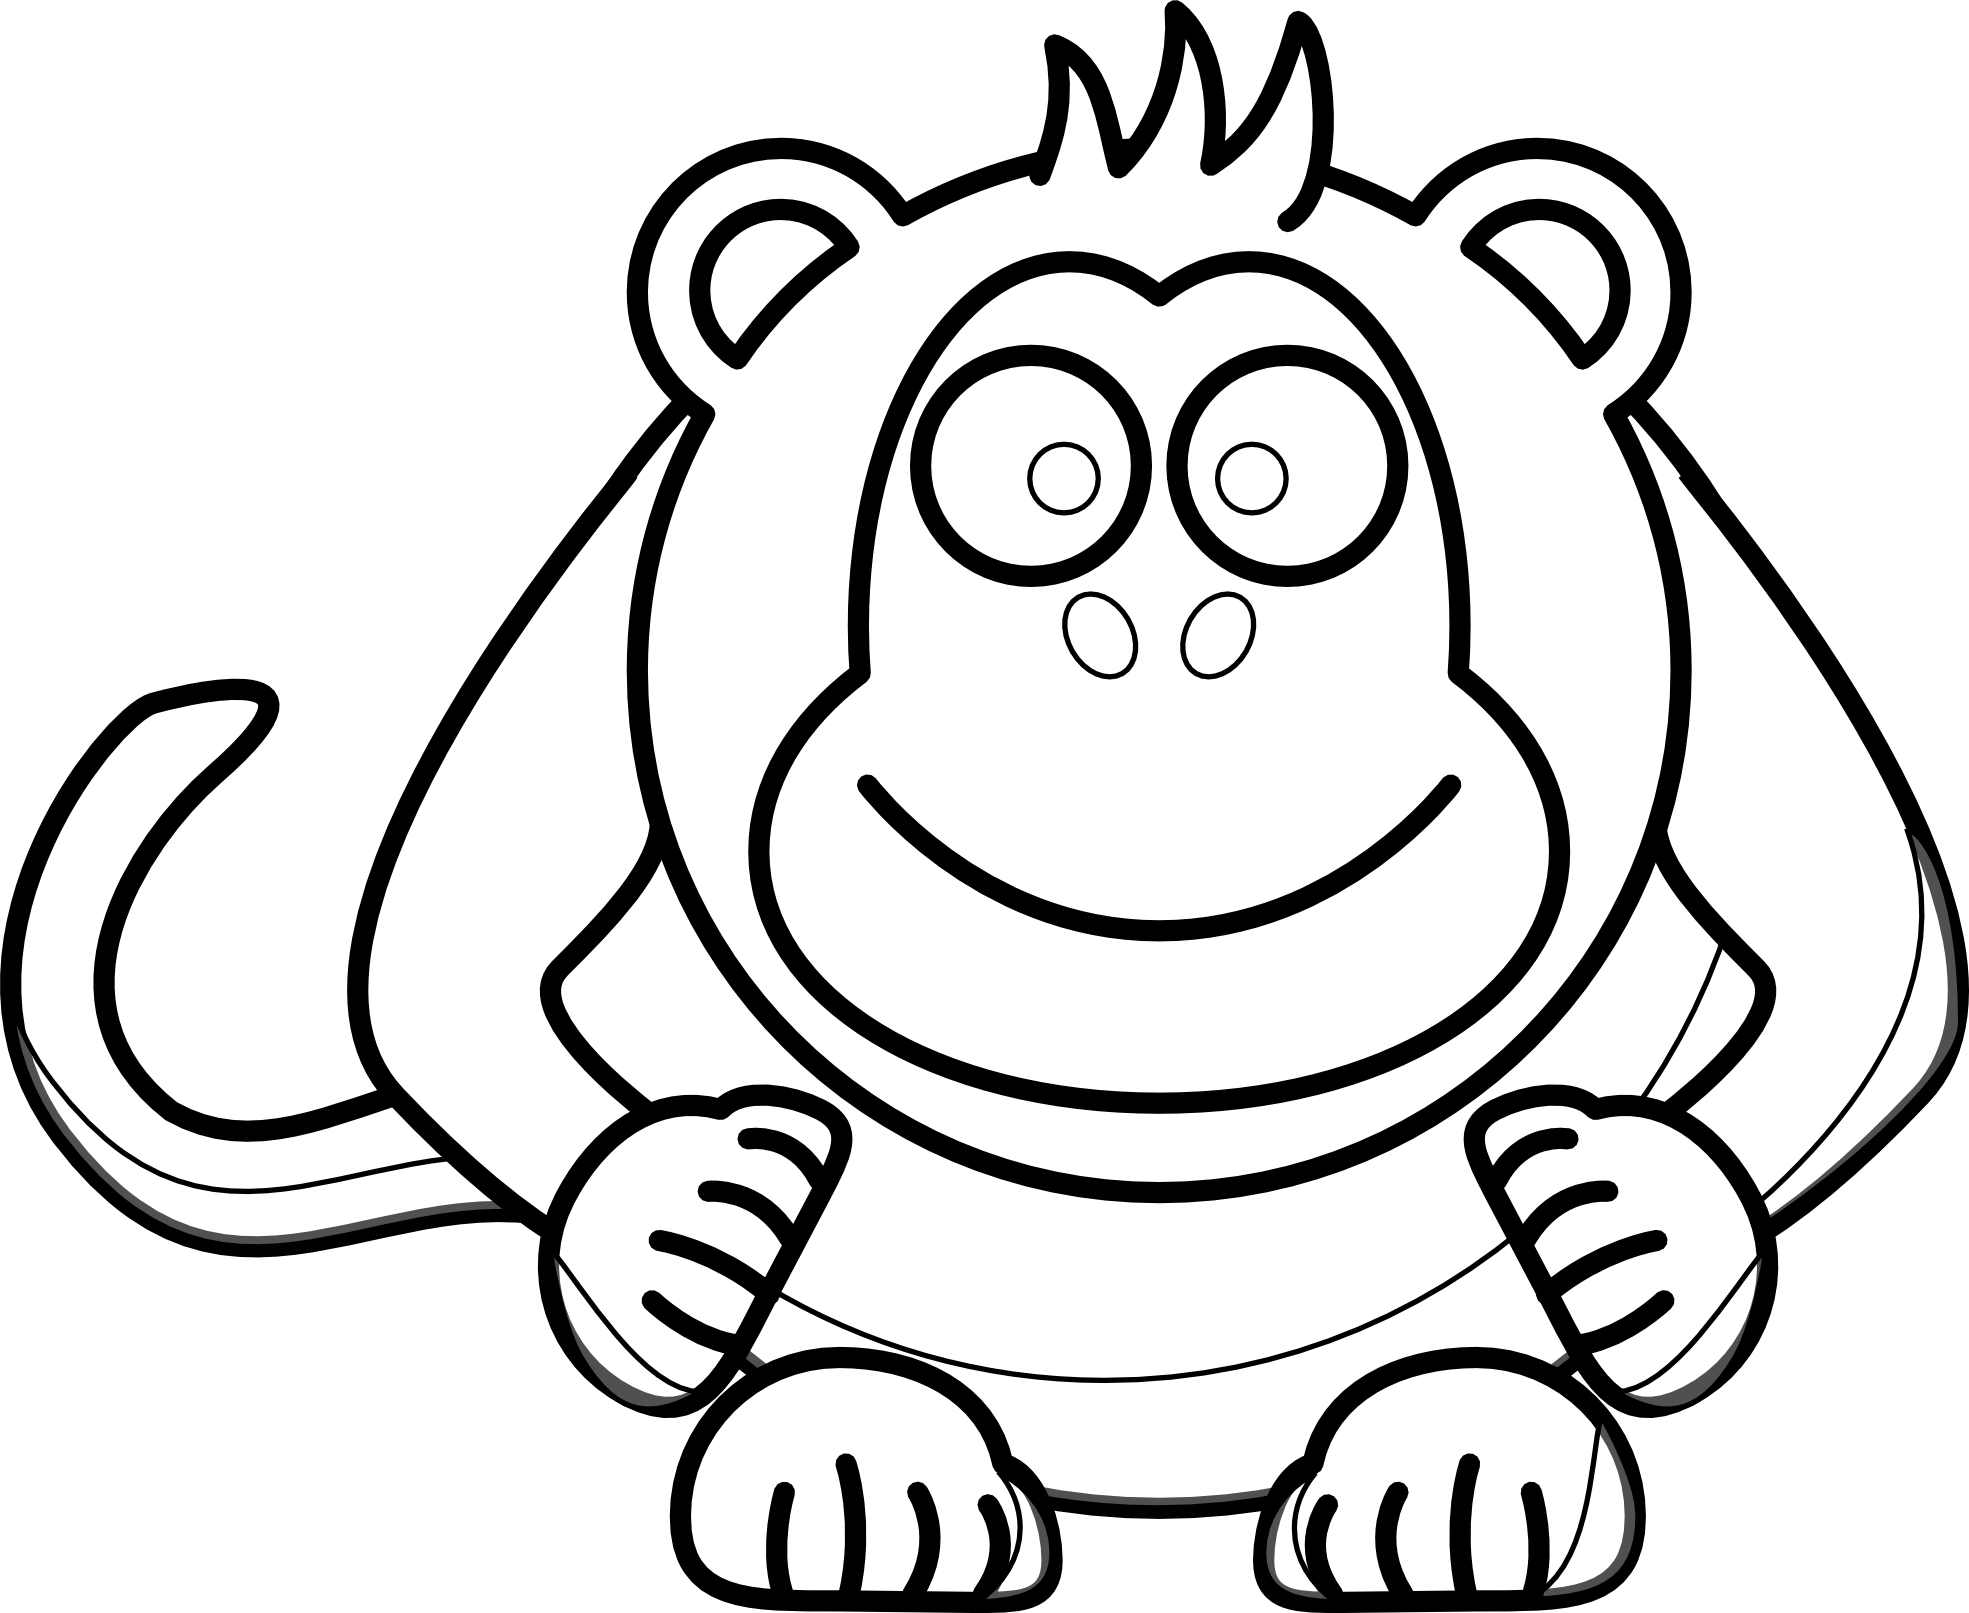 Monkey Clip Art Black And White.